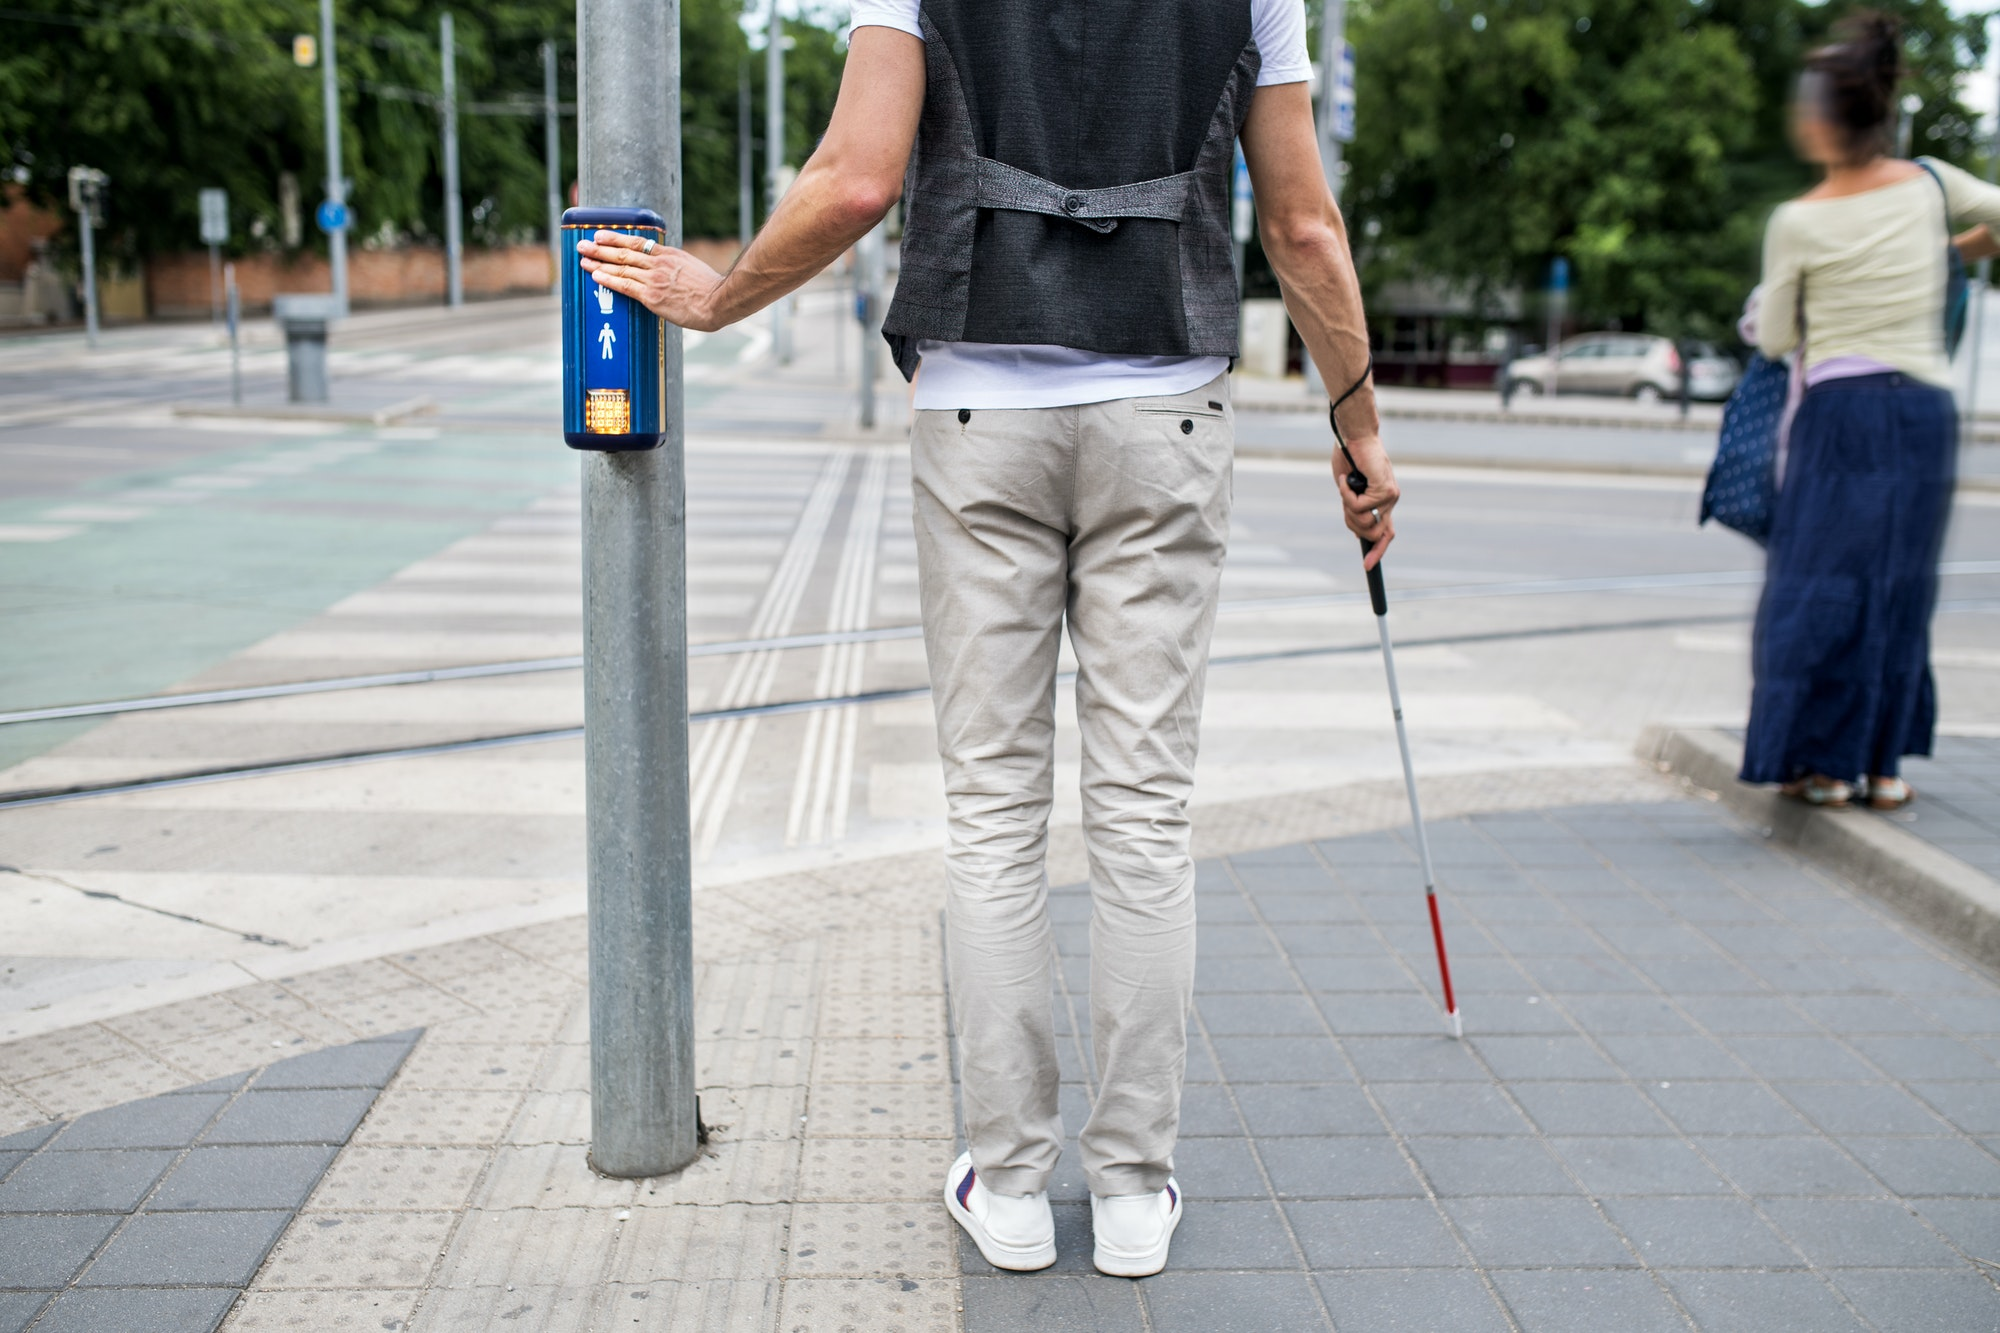 Midsection of blind man with white cane at pedestrain crossing in city.